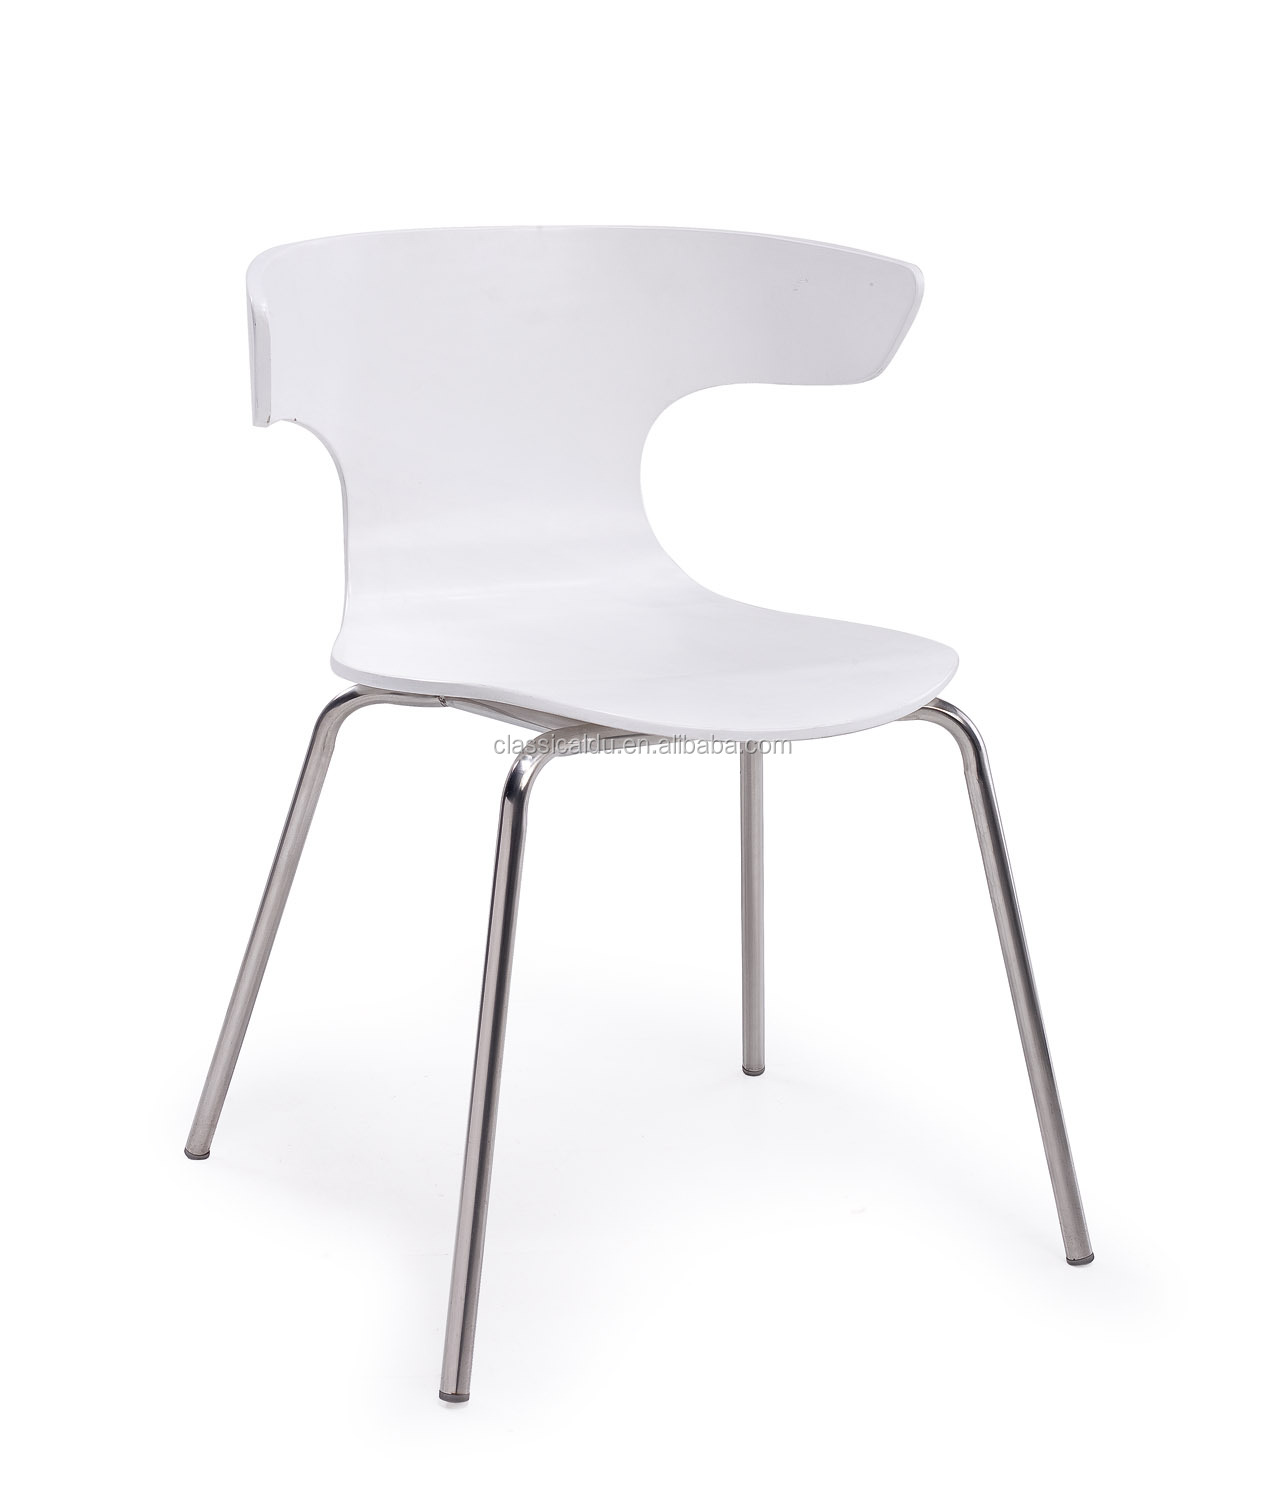 Used Restaurant Tables And Chairs Restaurant Chairs For Sale Used Cheap Restaurant Tables